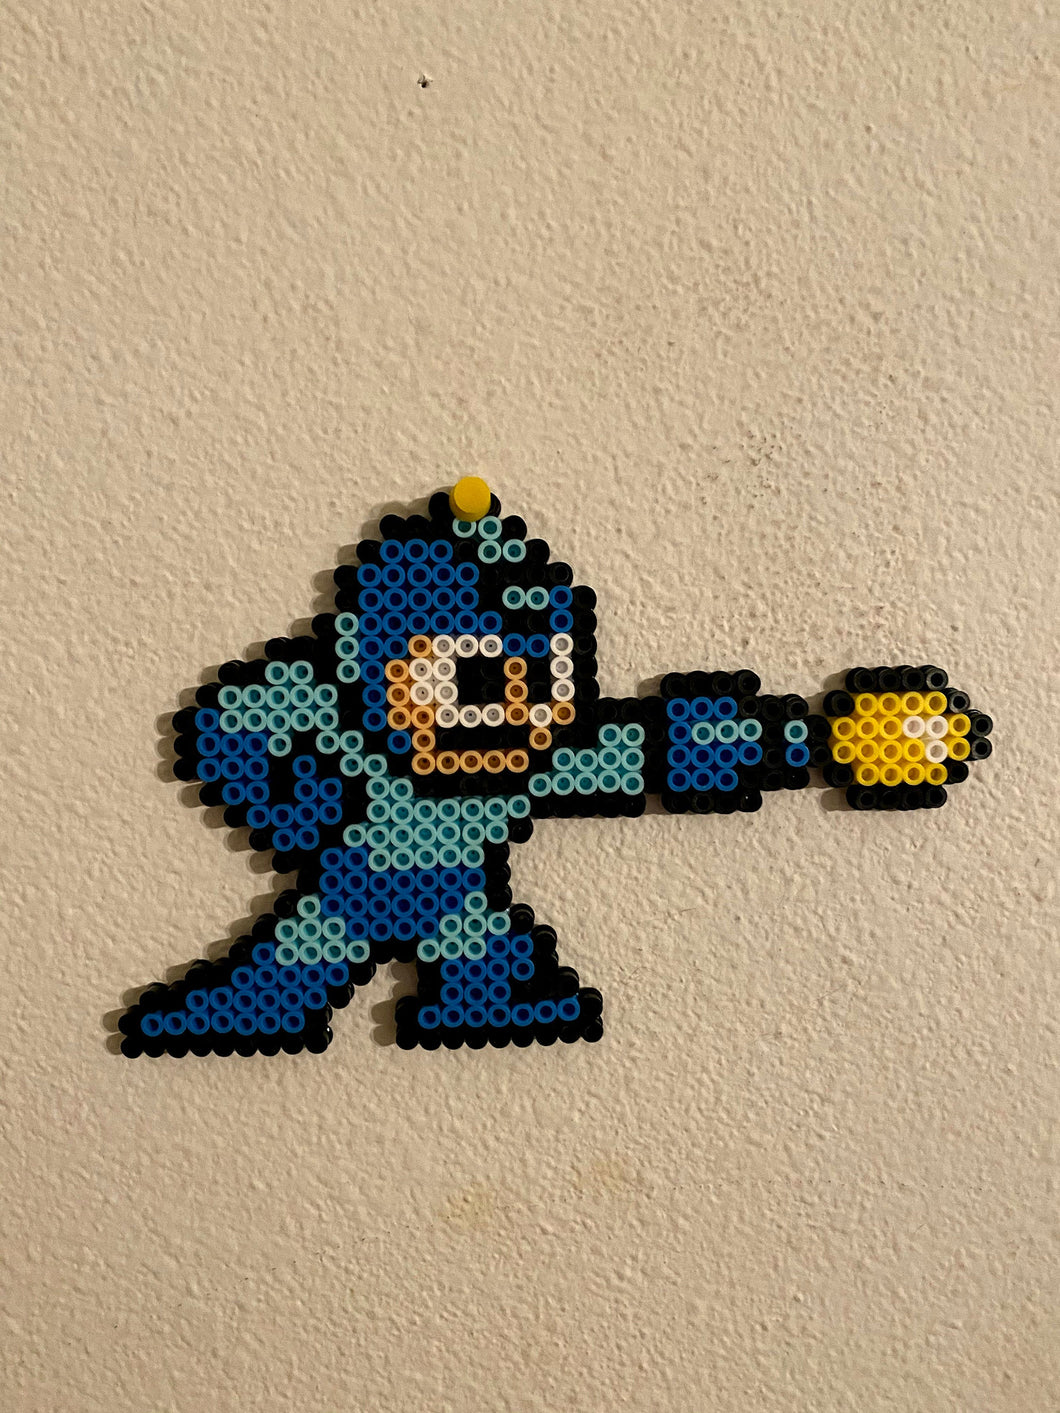 Mega Man & Rush Inspired Pixel Art- Wall Hangings, Kids Bedroom, Game Bedroom and More